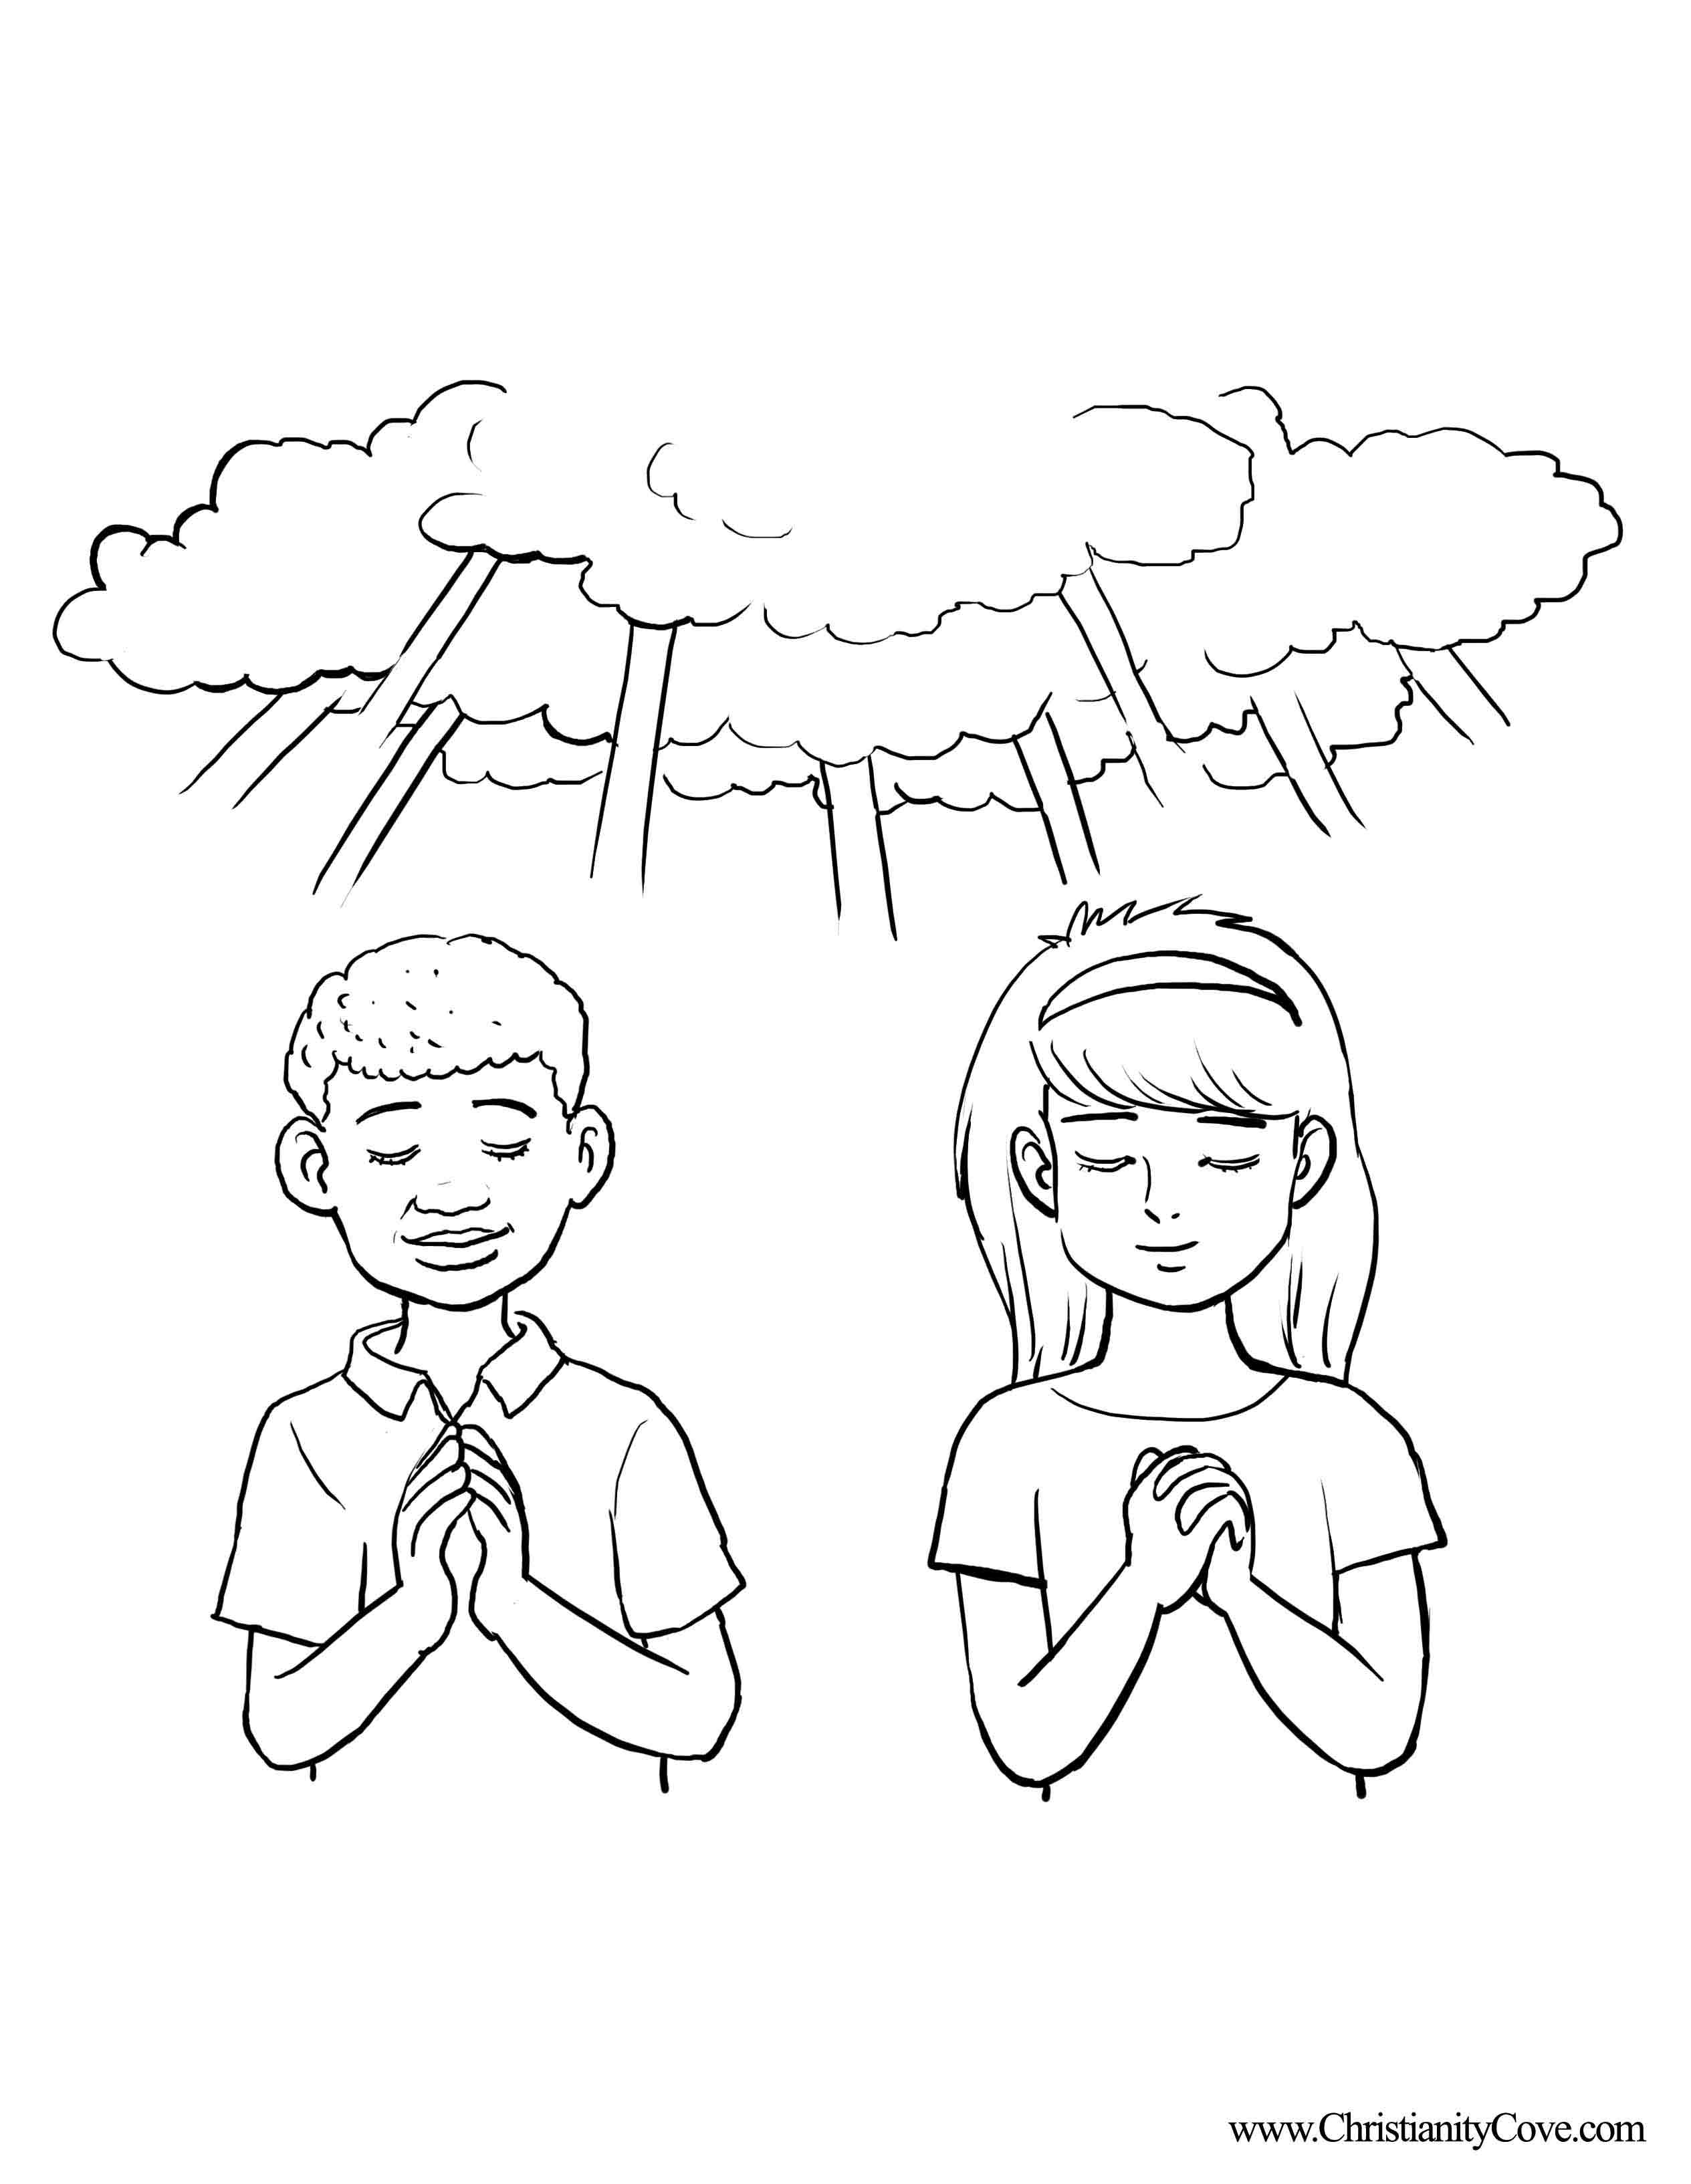 Boy And Girl Praying Coloring Page - Coloring Home